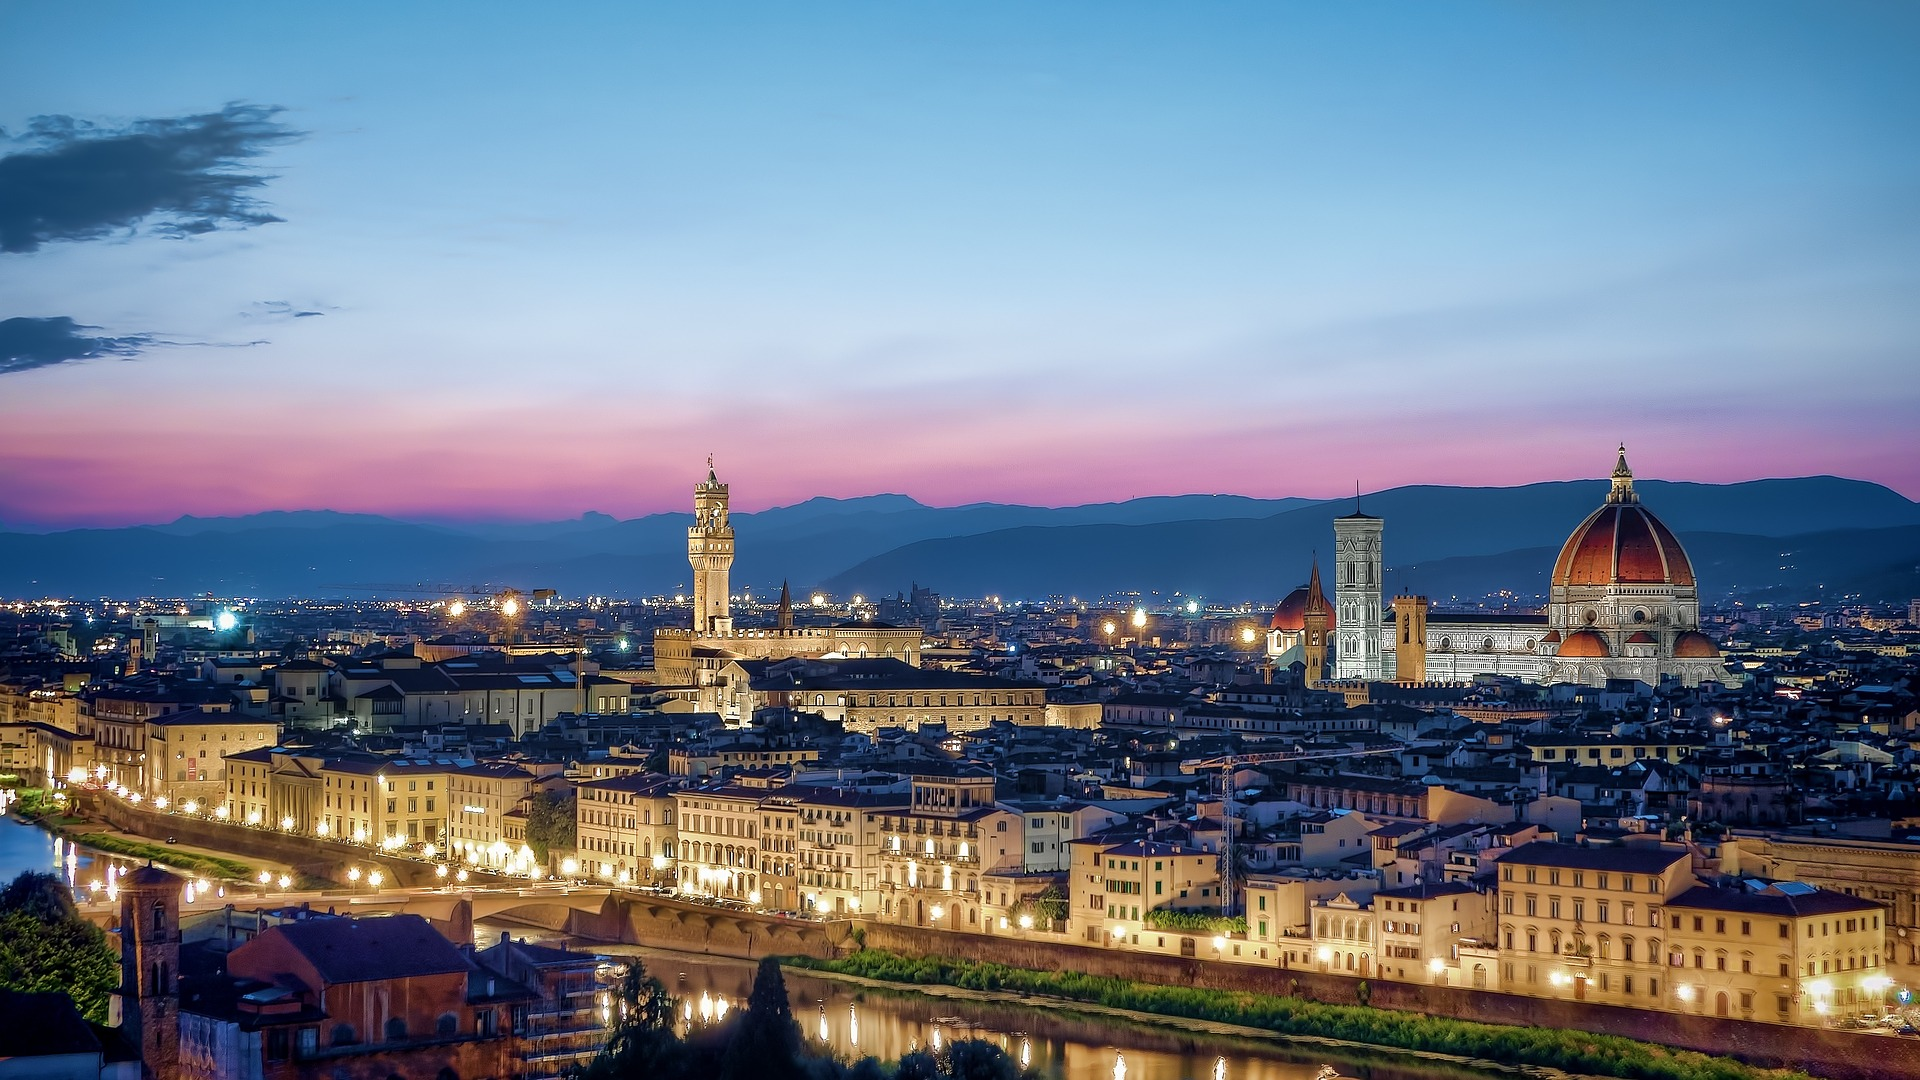 Italian Florence: 10 Unusual Things To Do In Florence, Italy